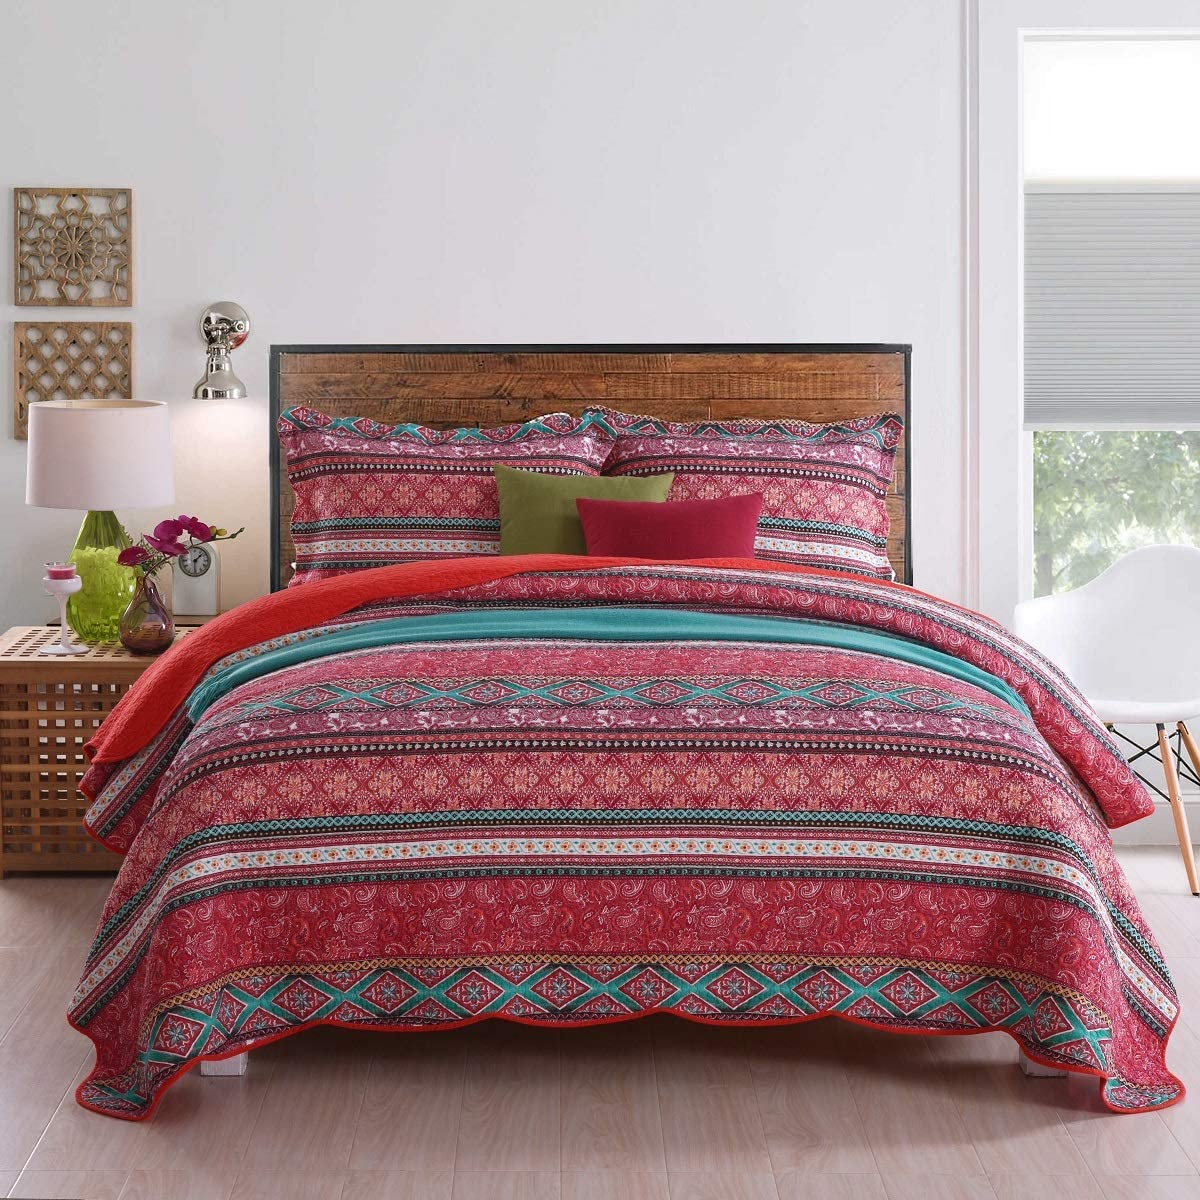 Qucover Red Striped Quilt Cover Sets King Size 3 Pieces, Cotton Quilted Bedspread Bedding Sets for King Bed